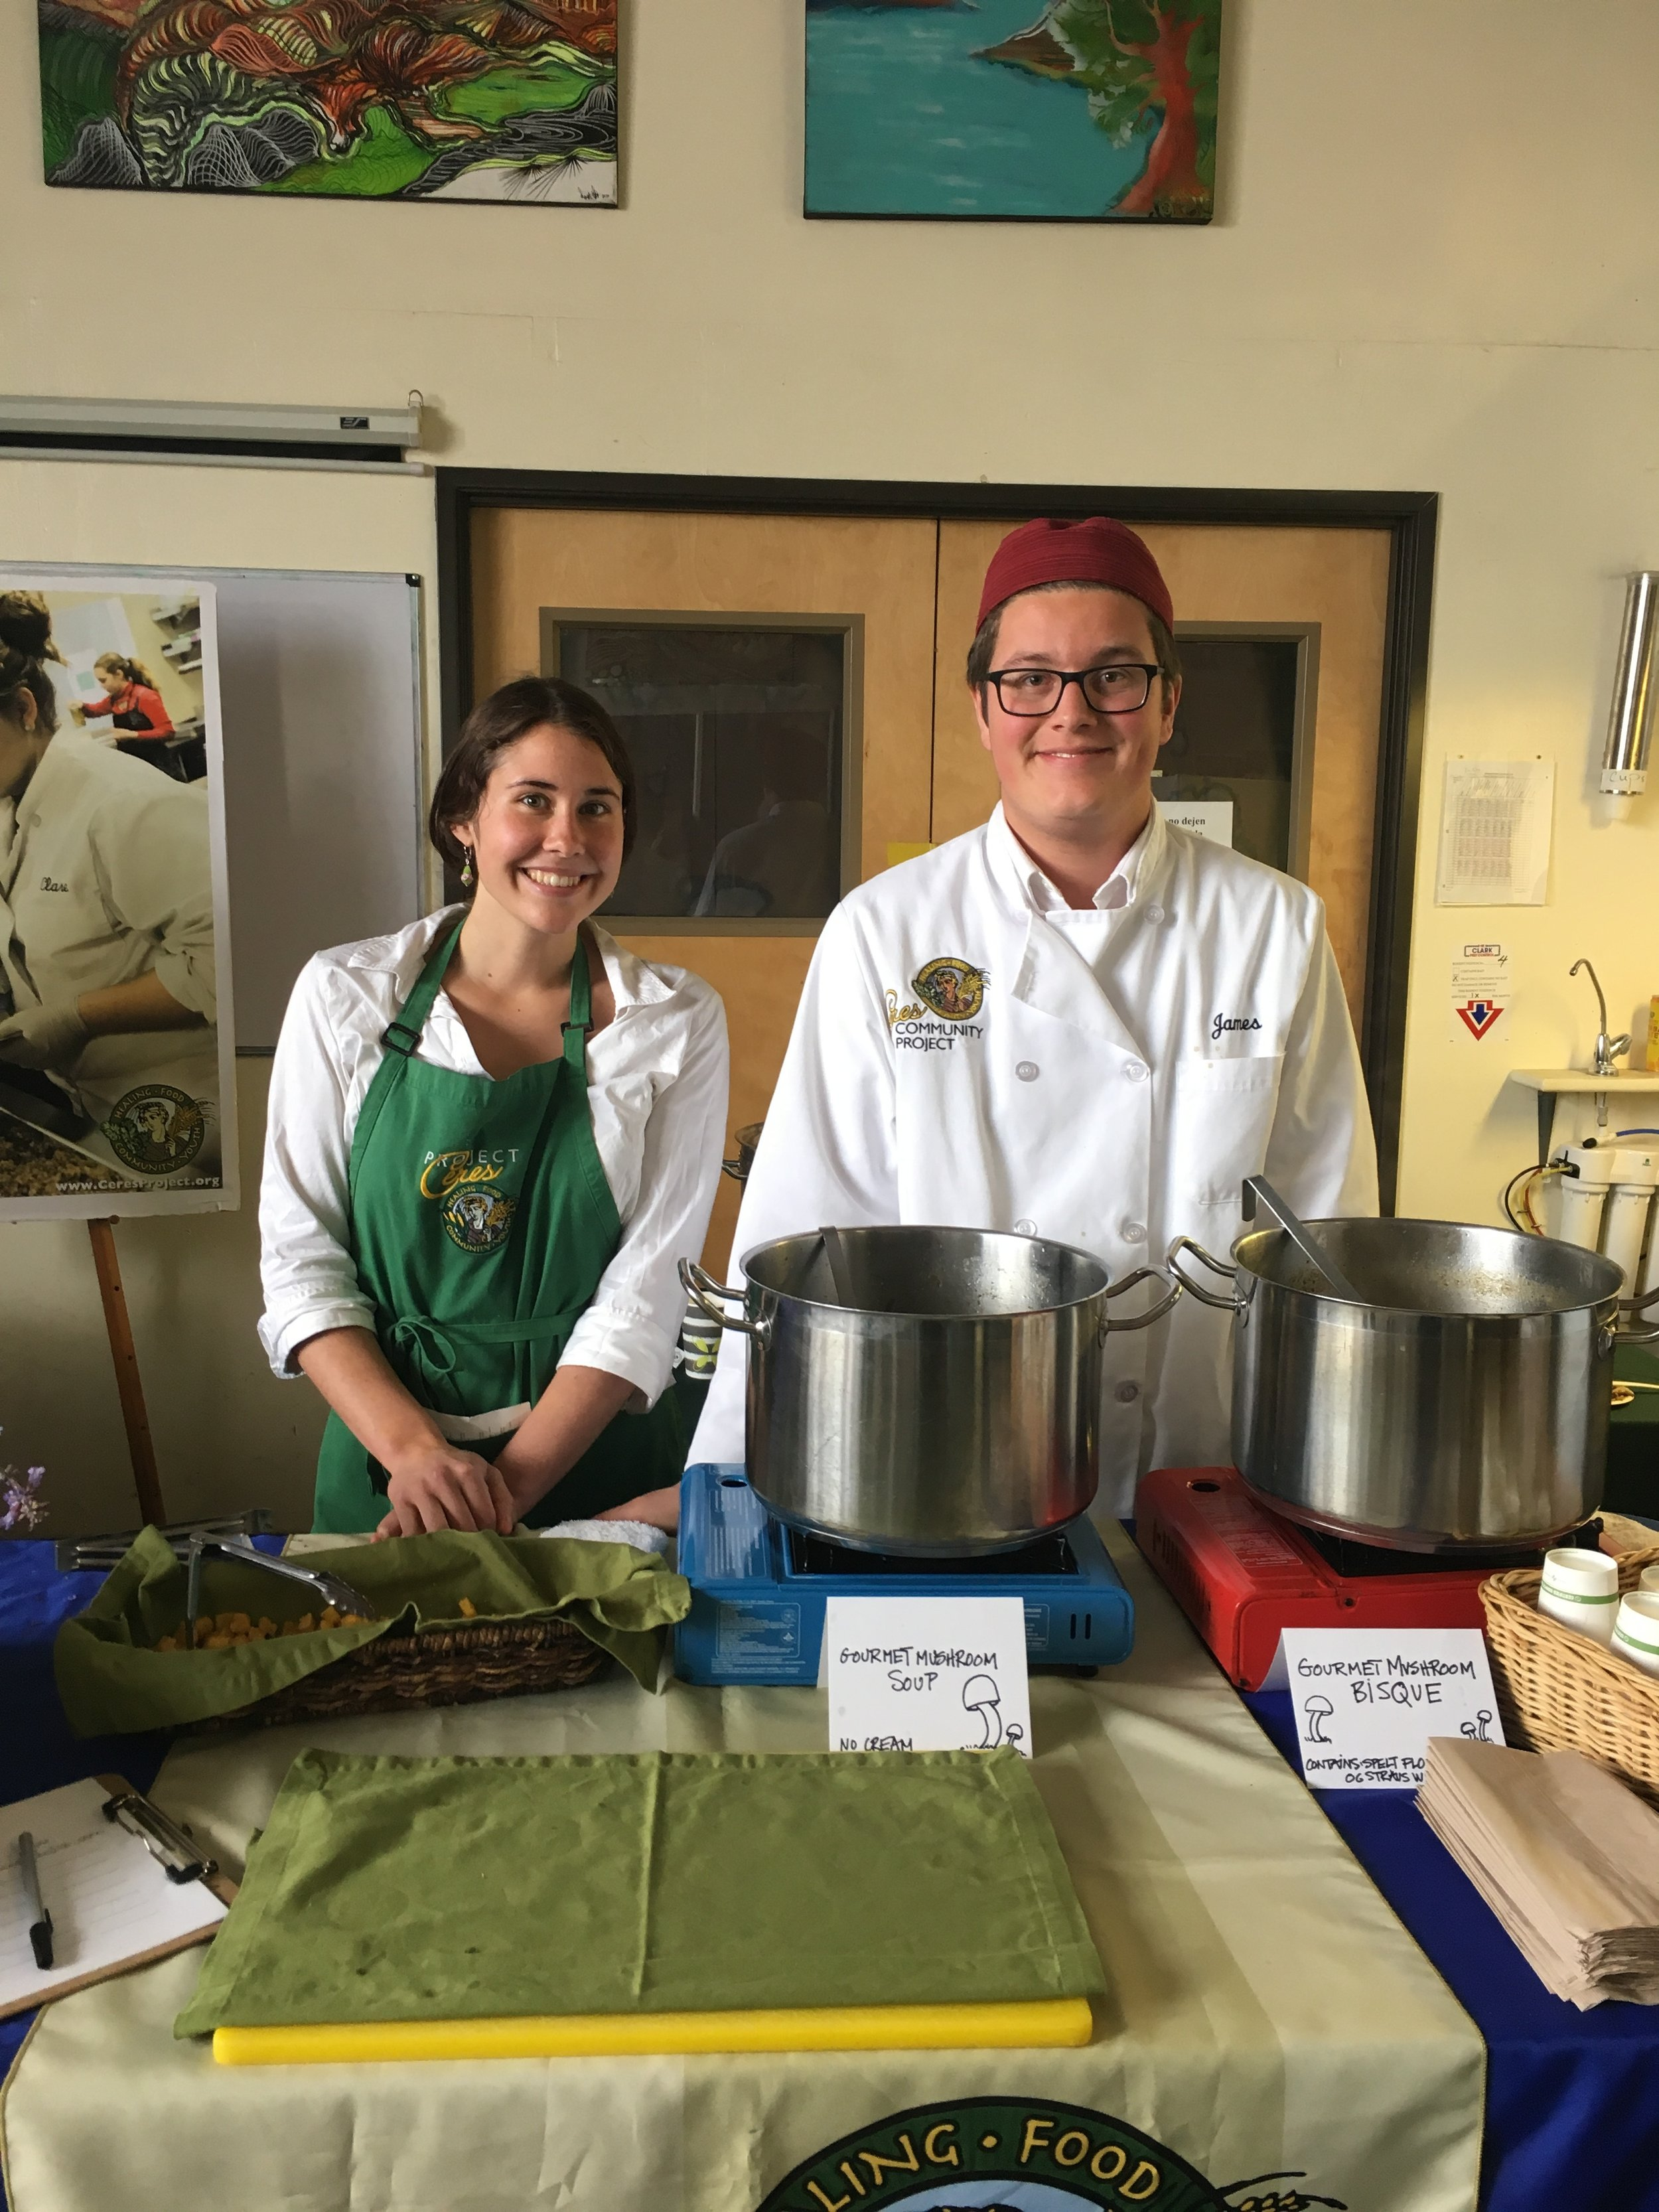 Ceres Community Project volunteers with a mushroom soup